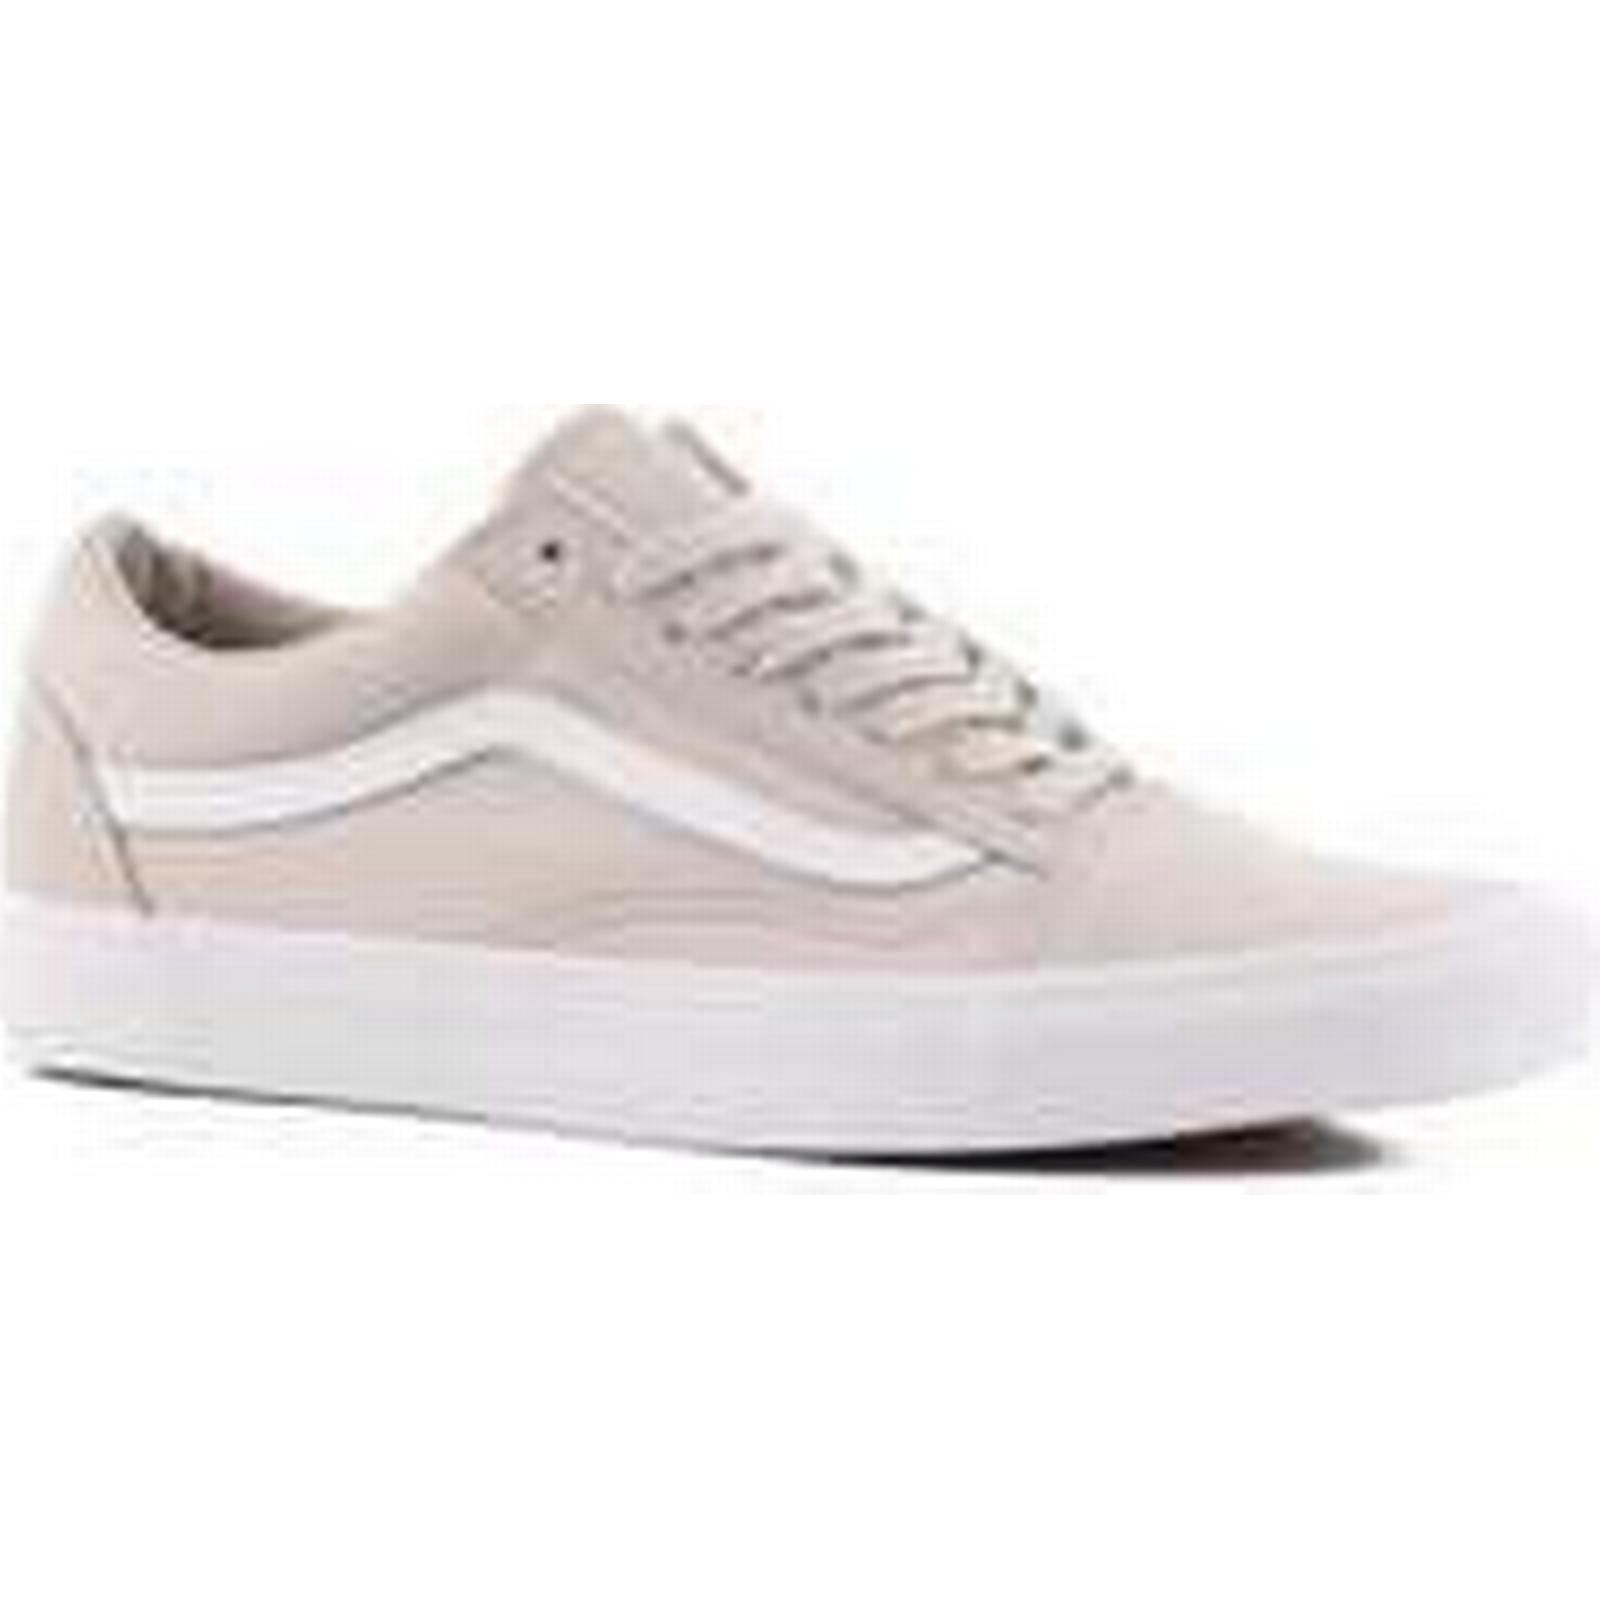 Vans Shoes Old Skool Skate Shoes Vans (suiting) silver lining/true white 057cb6